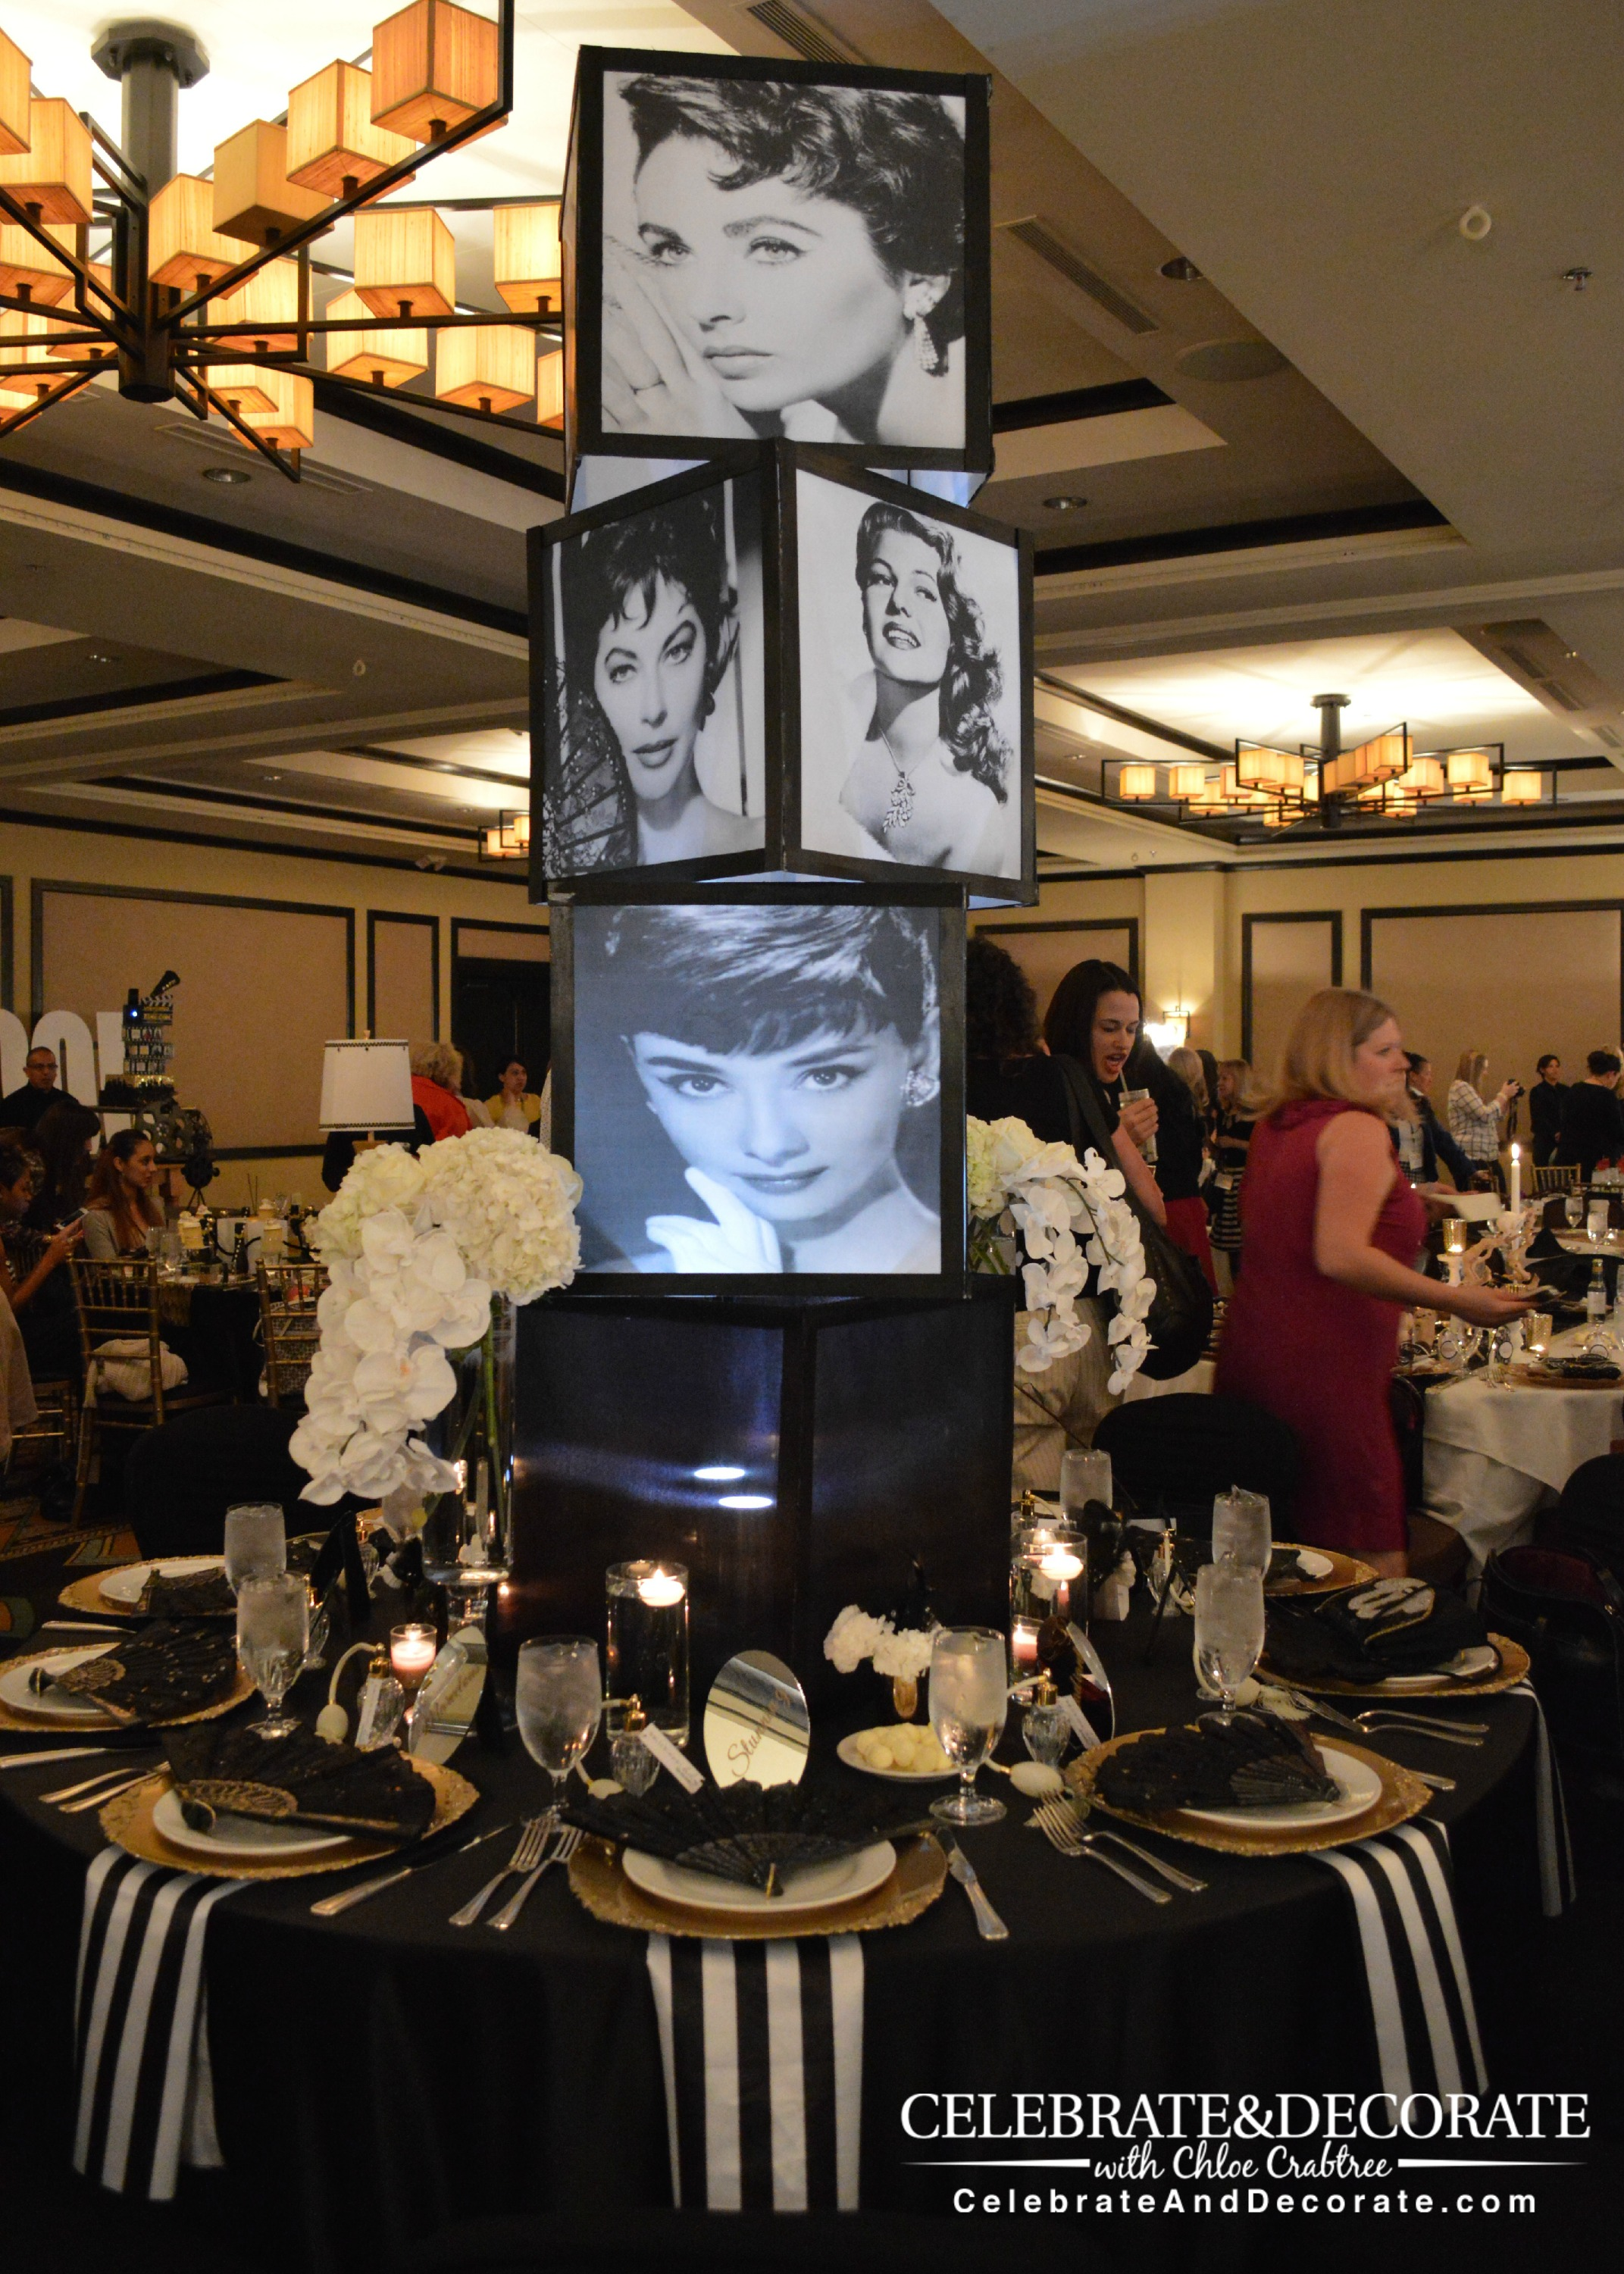 Hollywood Themed Gala | Hollywood party decorations, Old ... |Old Hollywood Themed Birthday Party